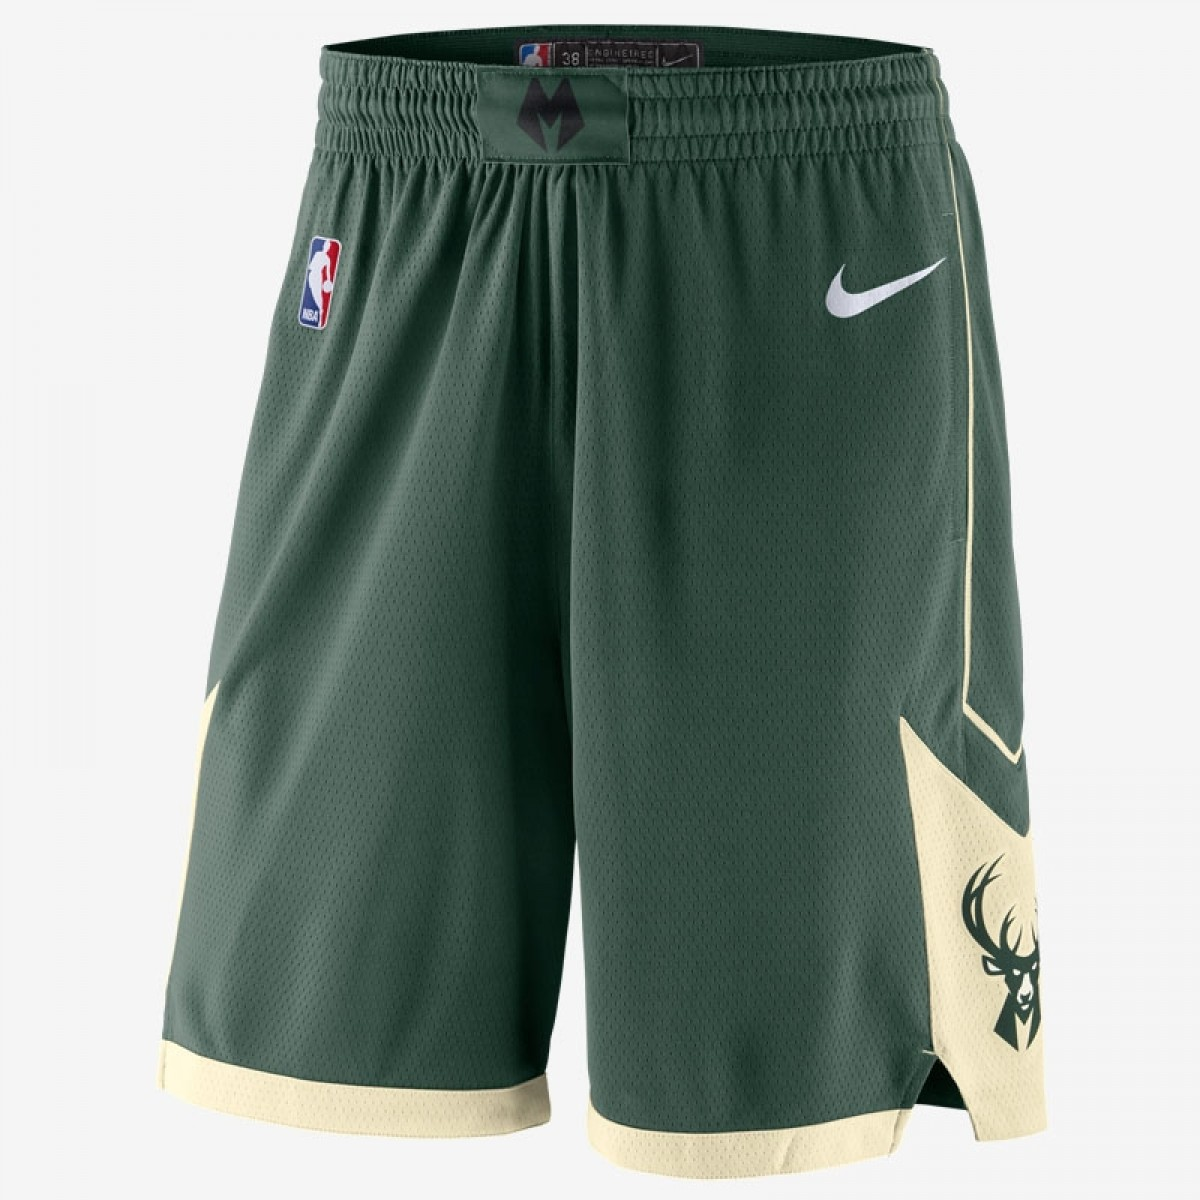 Nike NBA Bucks Swingman Short 'Icon Edition'